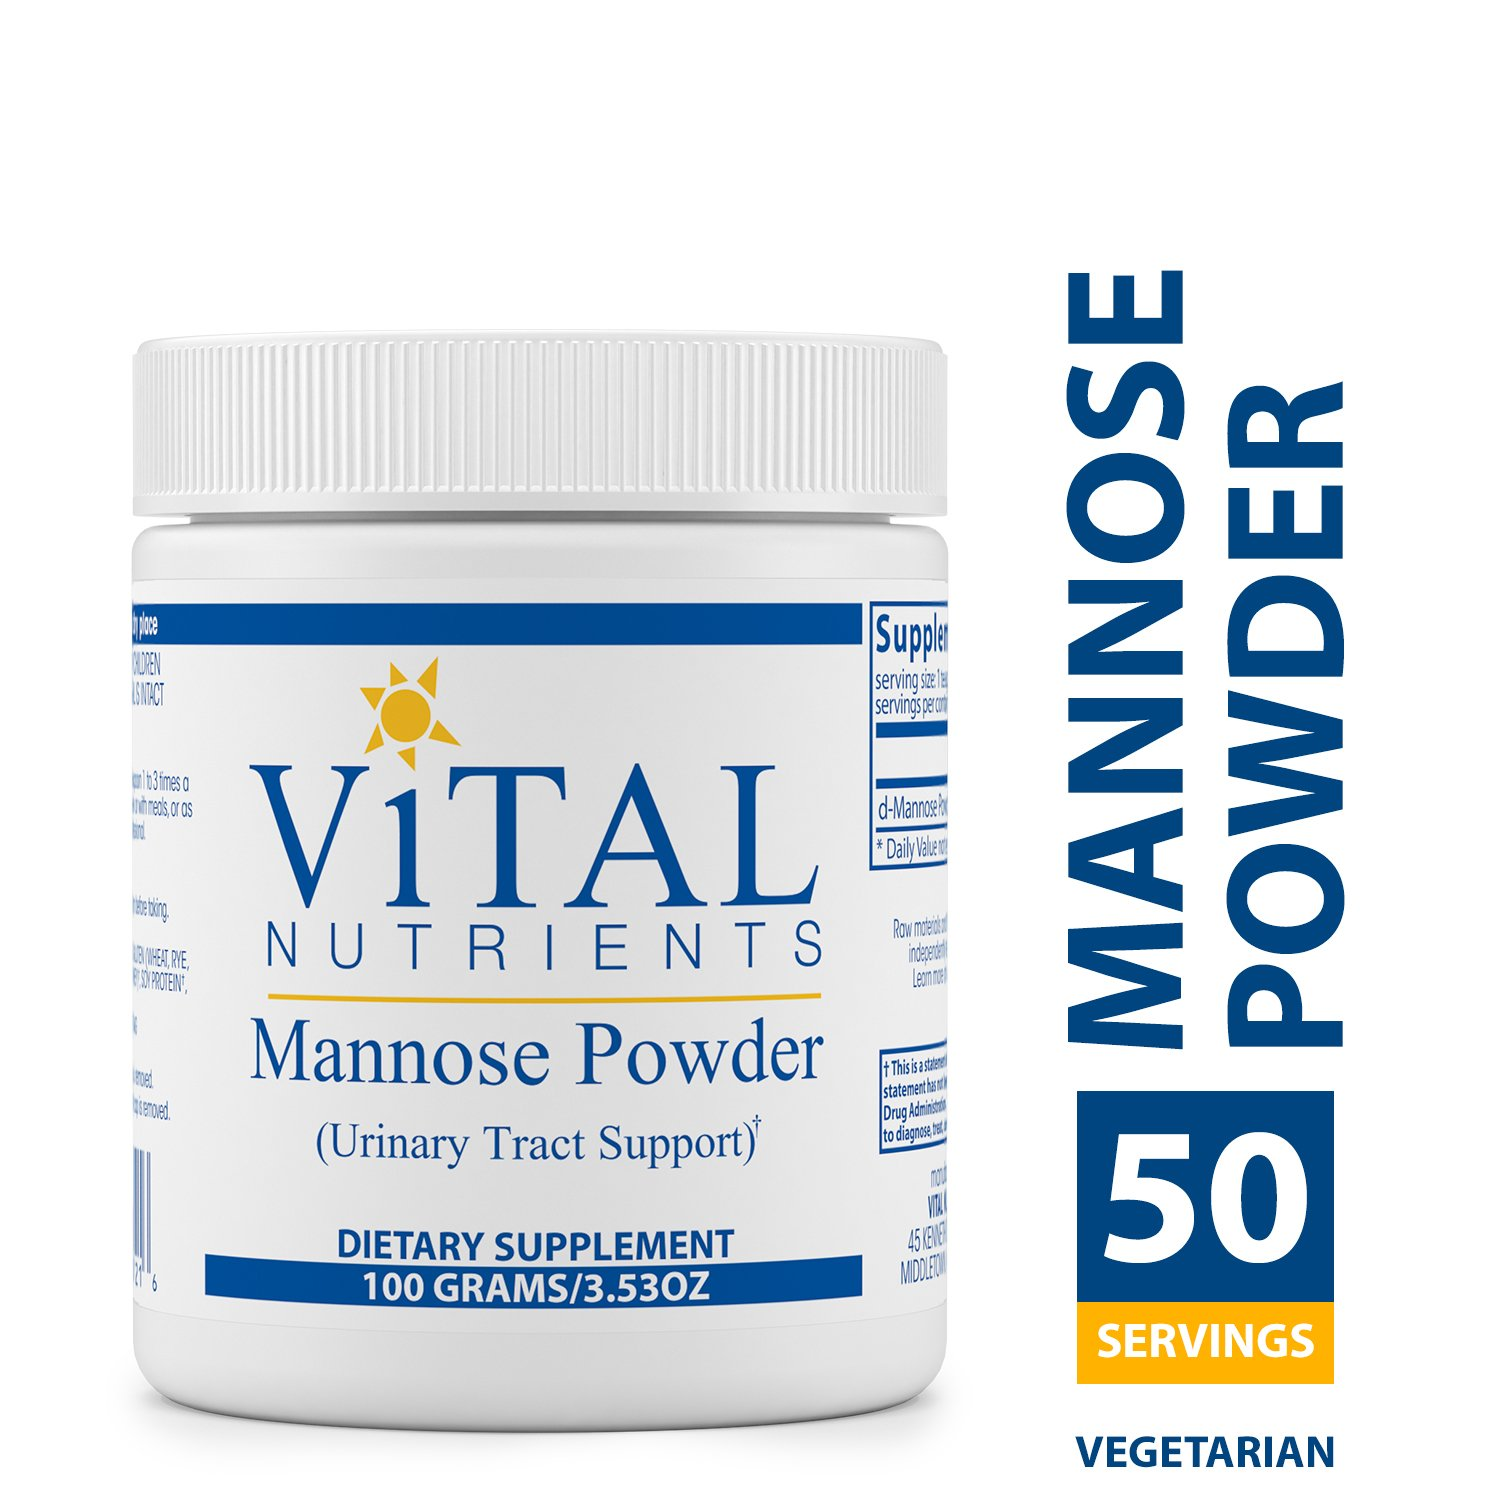 Vital Nutrients - Mannose Powder - Urinary Tract Support - Vegetarian - 100 Grams per Bottle by Vital Nutrients